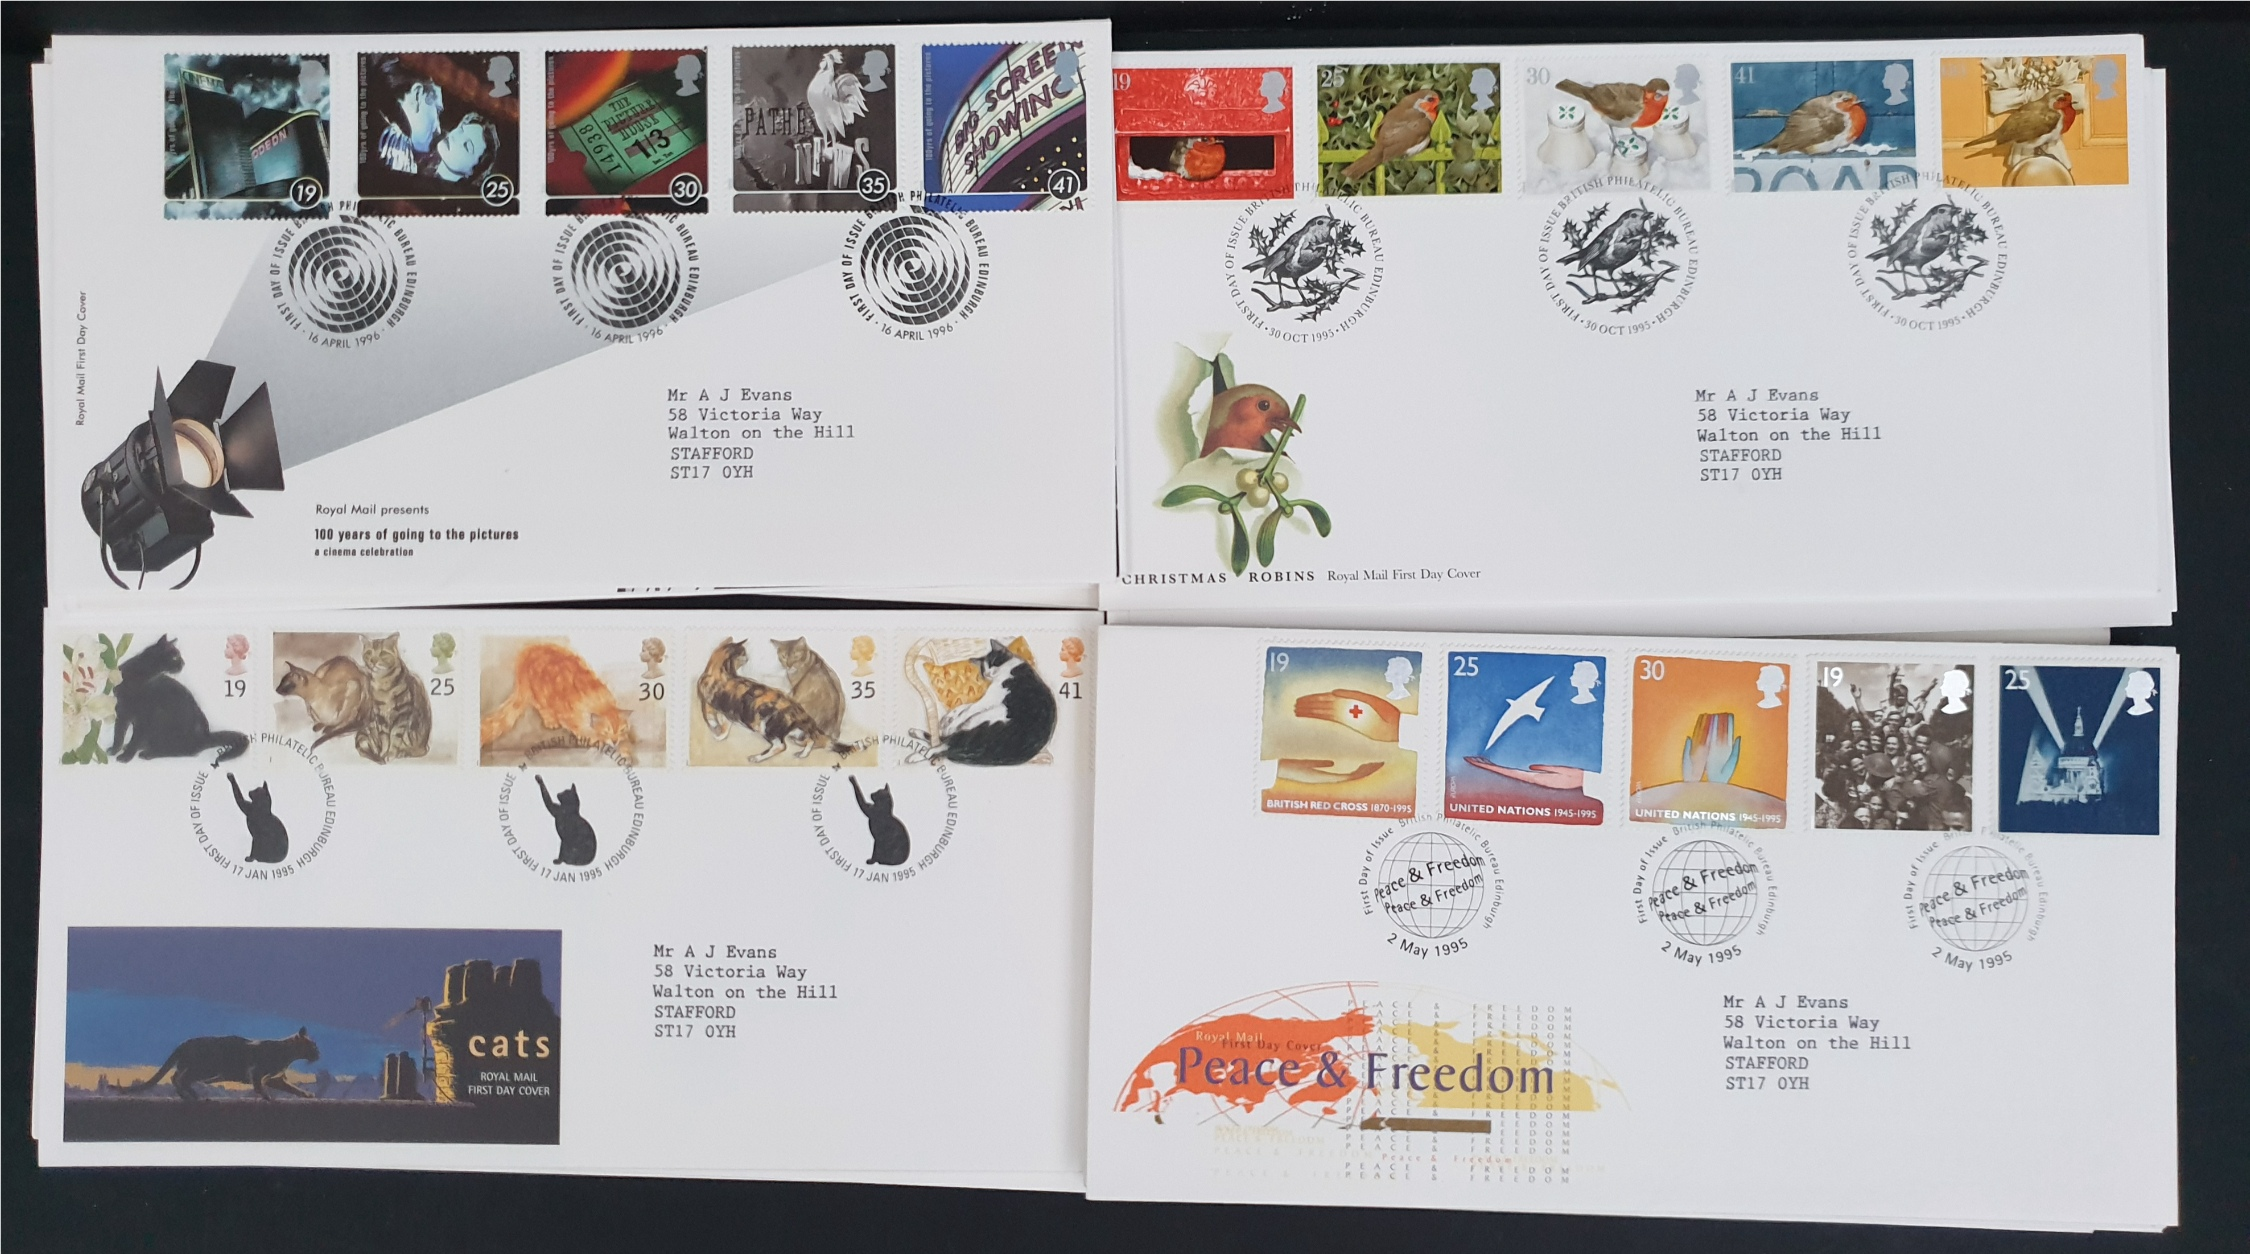 20 x Collectable Vintage First Day Covers 1995/96